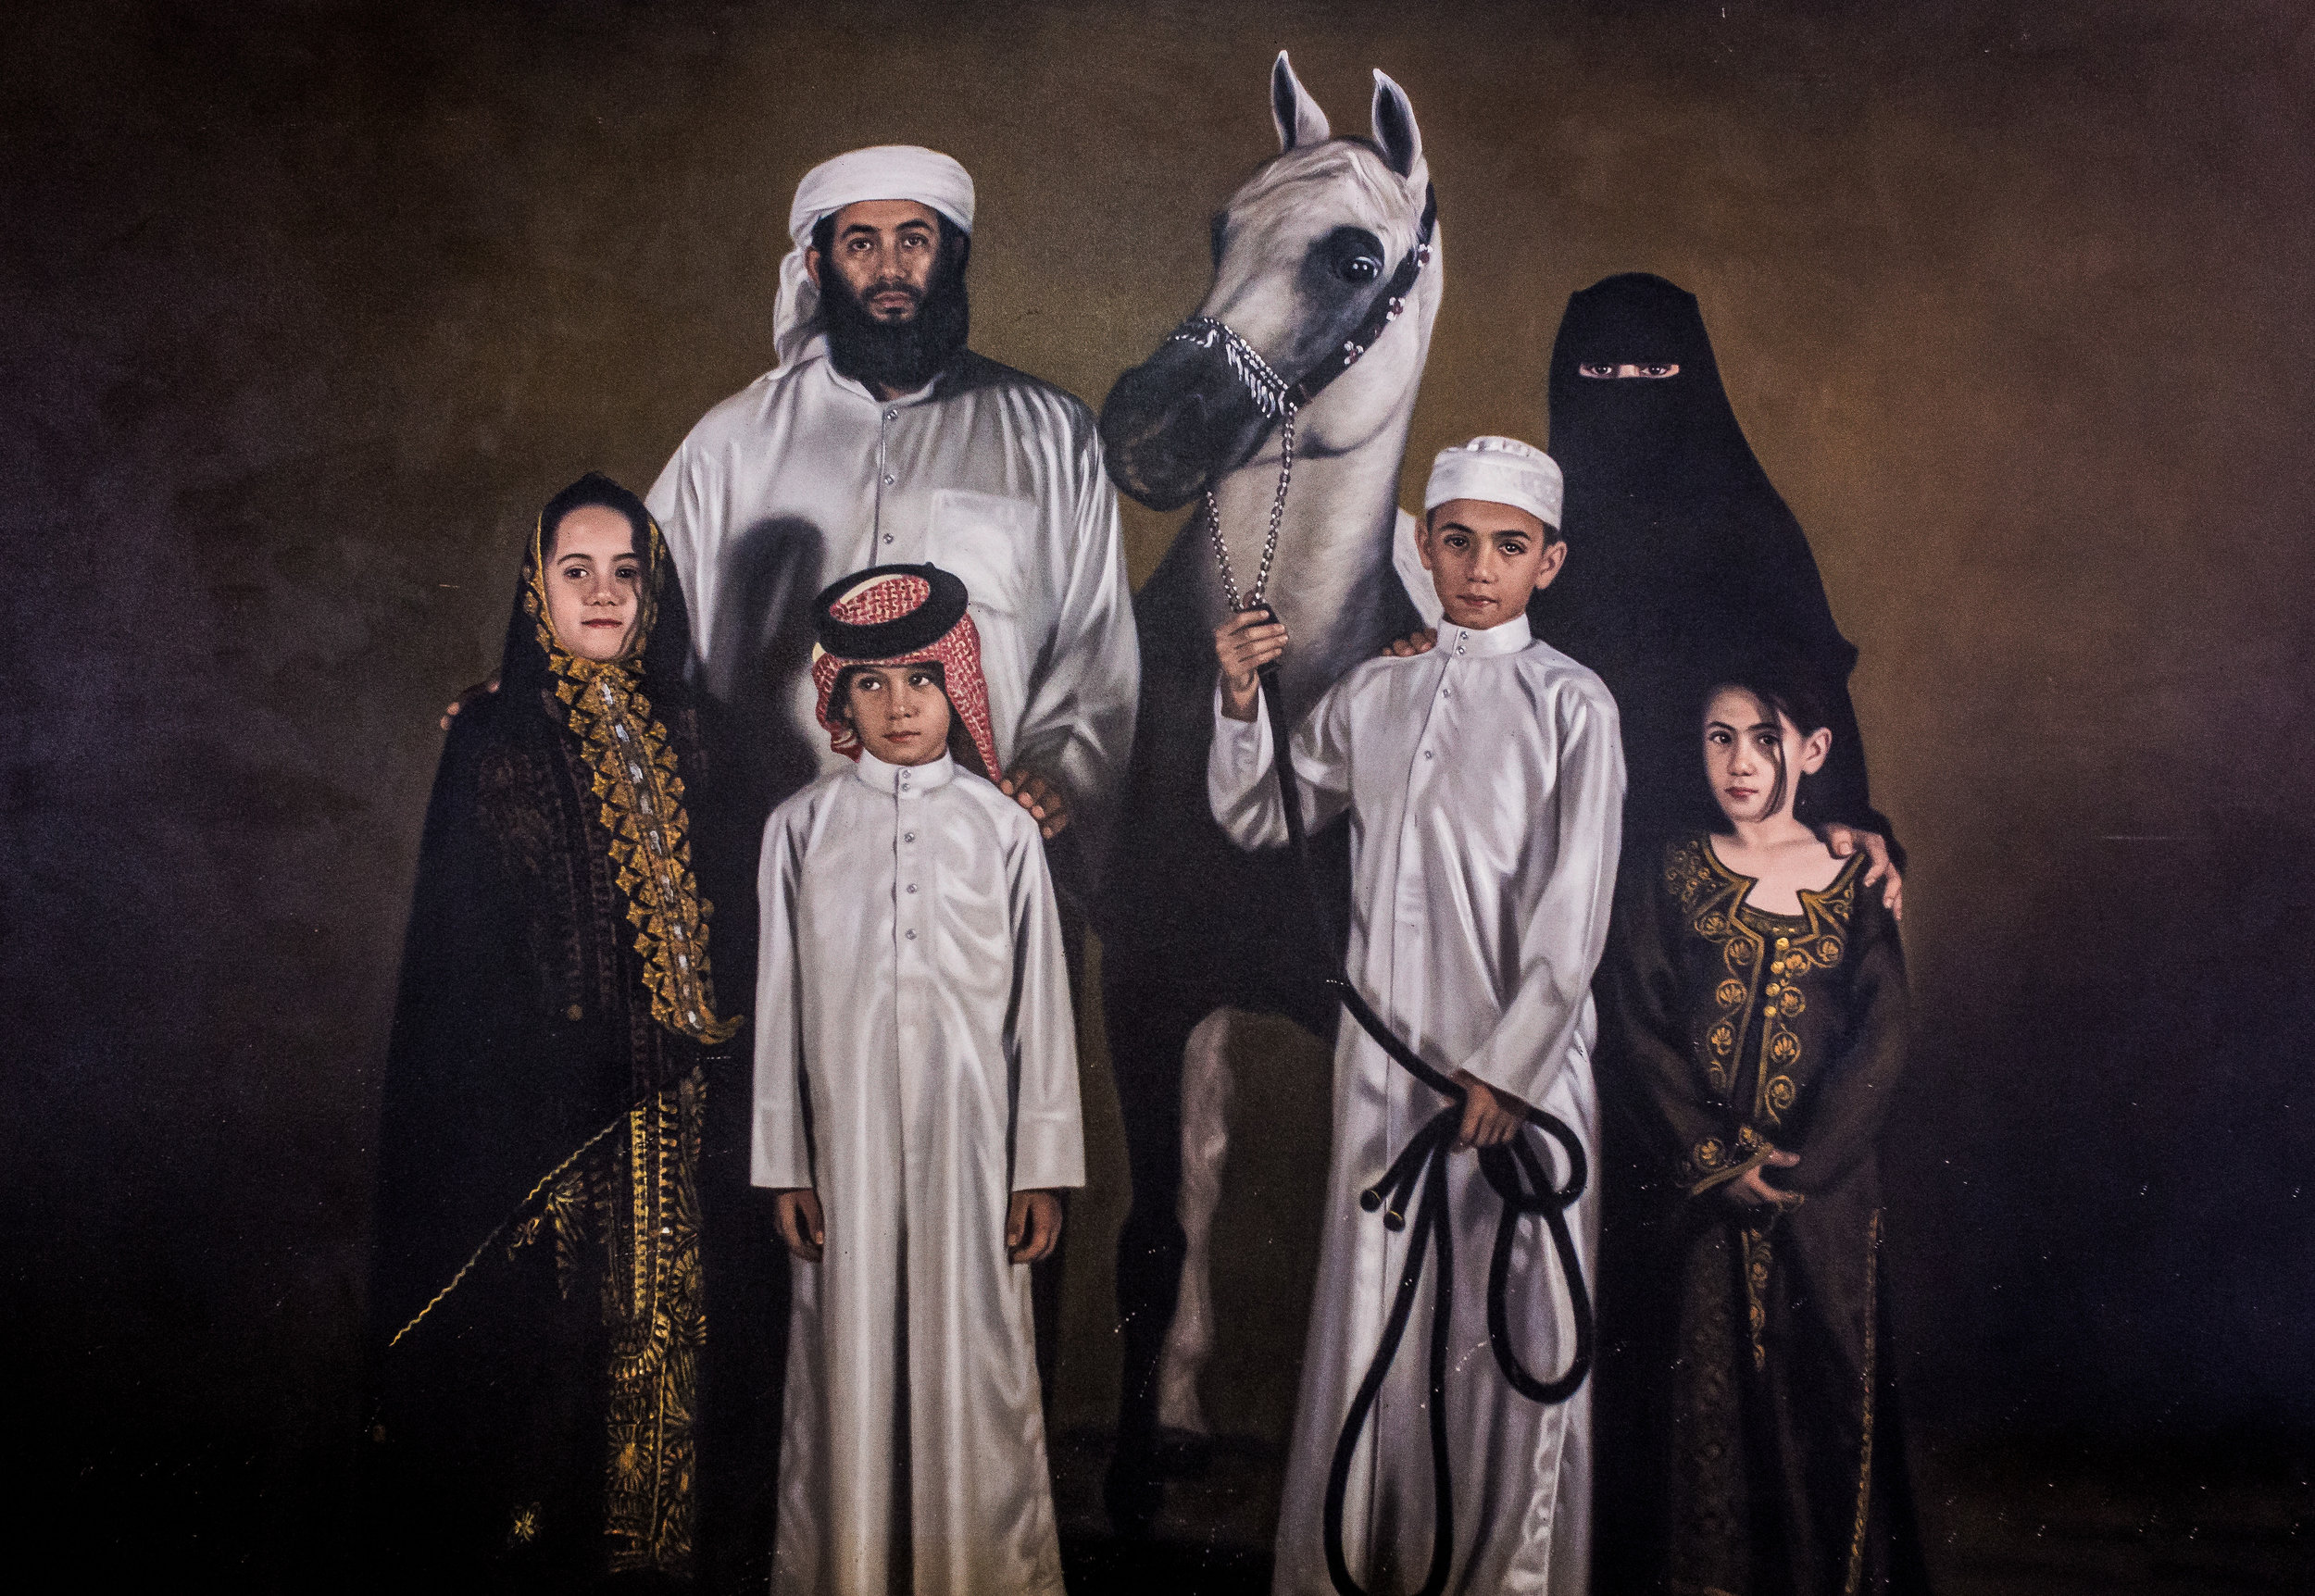 Bin Laden Family Portrait. Yep, my Photographer found a family painting. Crazy right? No we didn't buy it. NEVER!! But he took a pic of it hanging on the wall. Crazy Right?